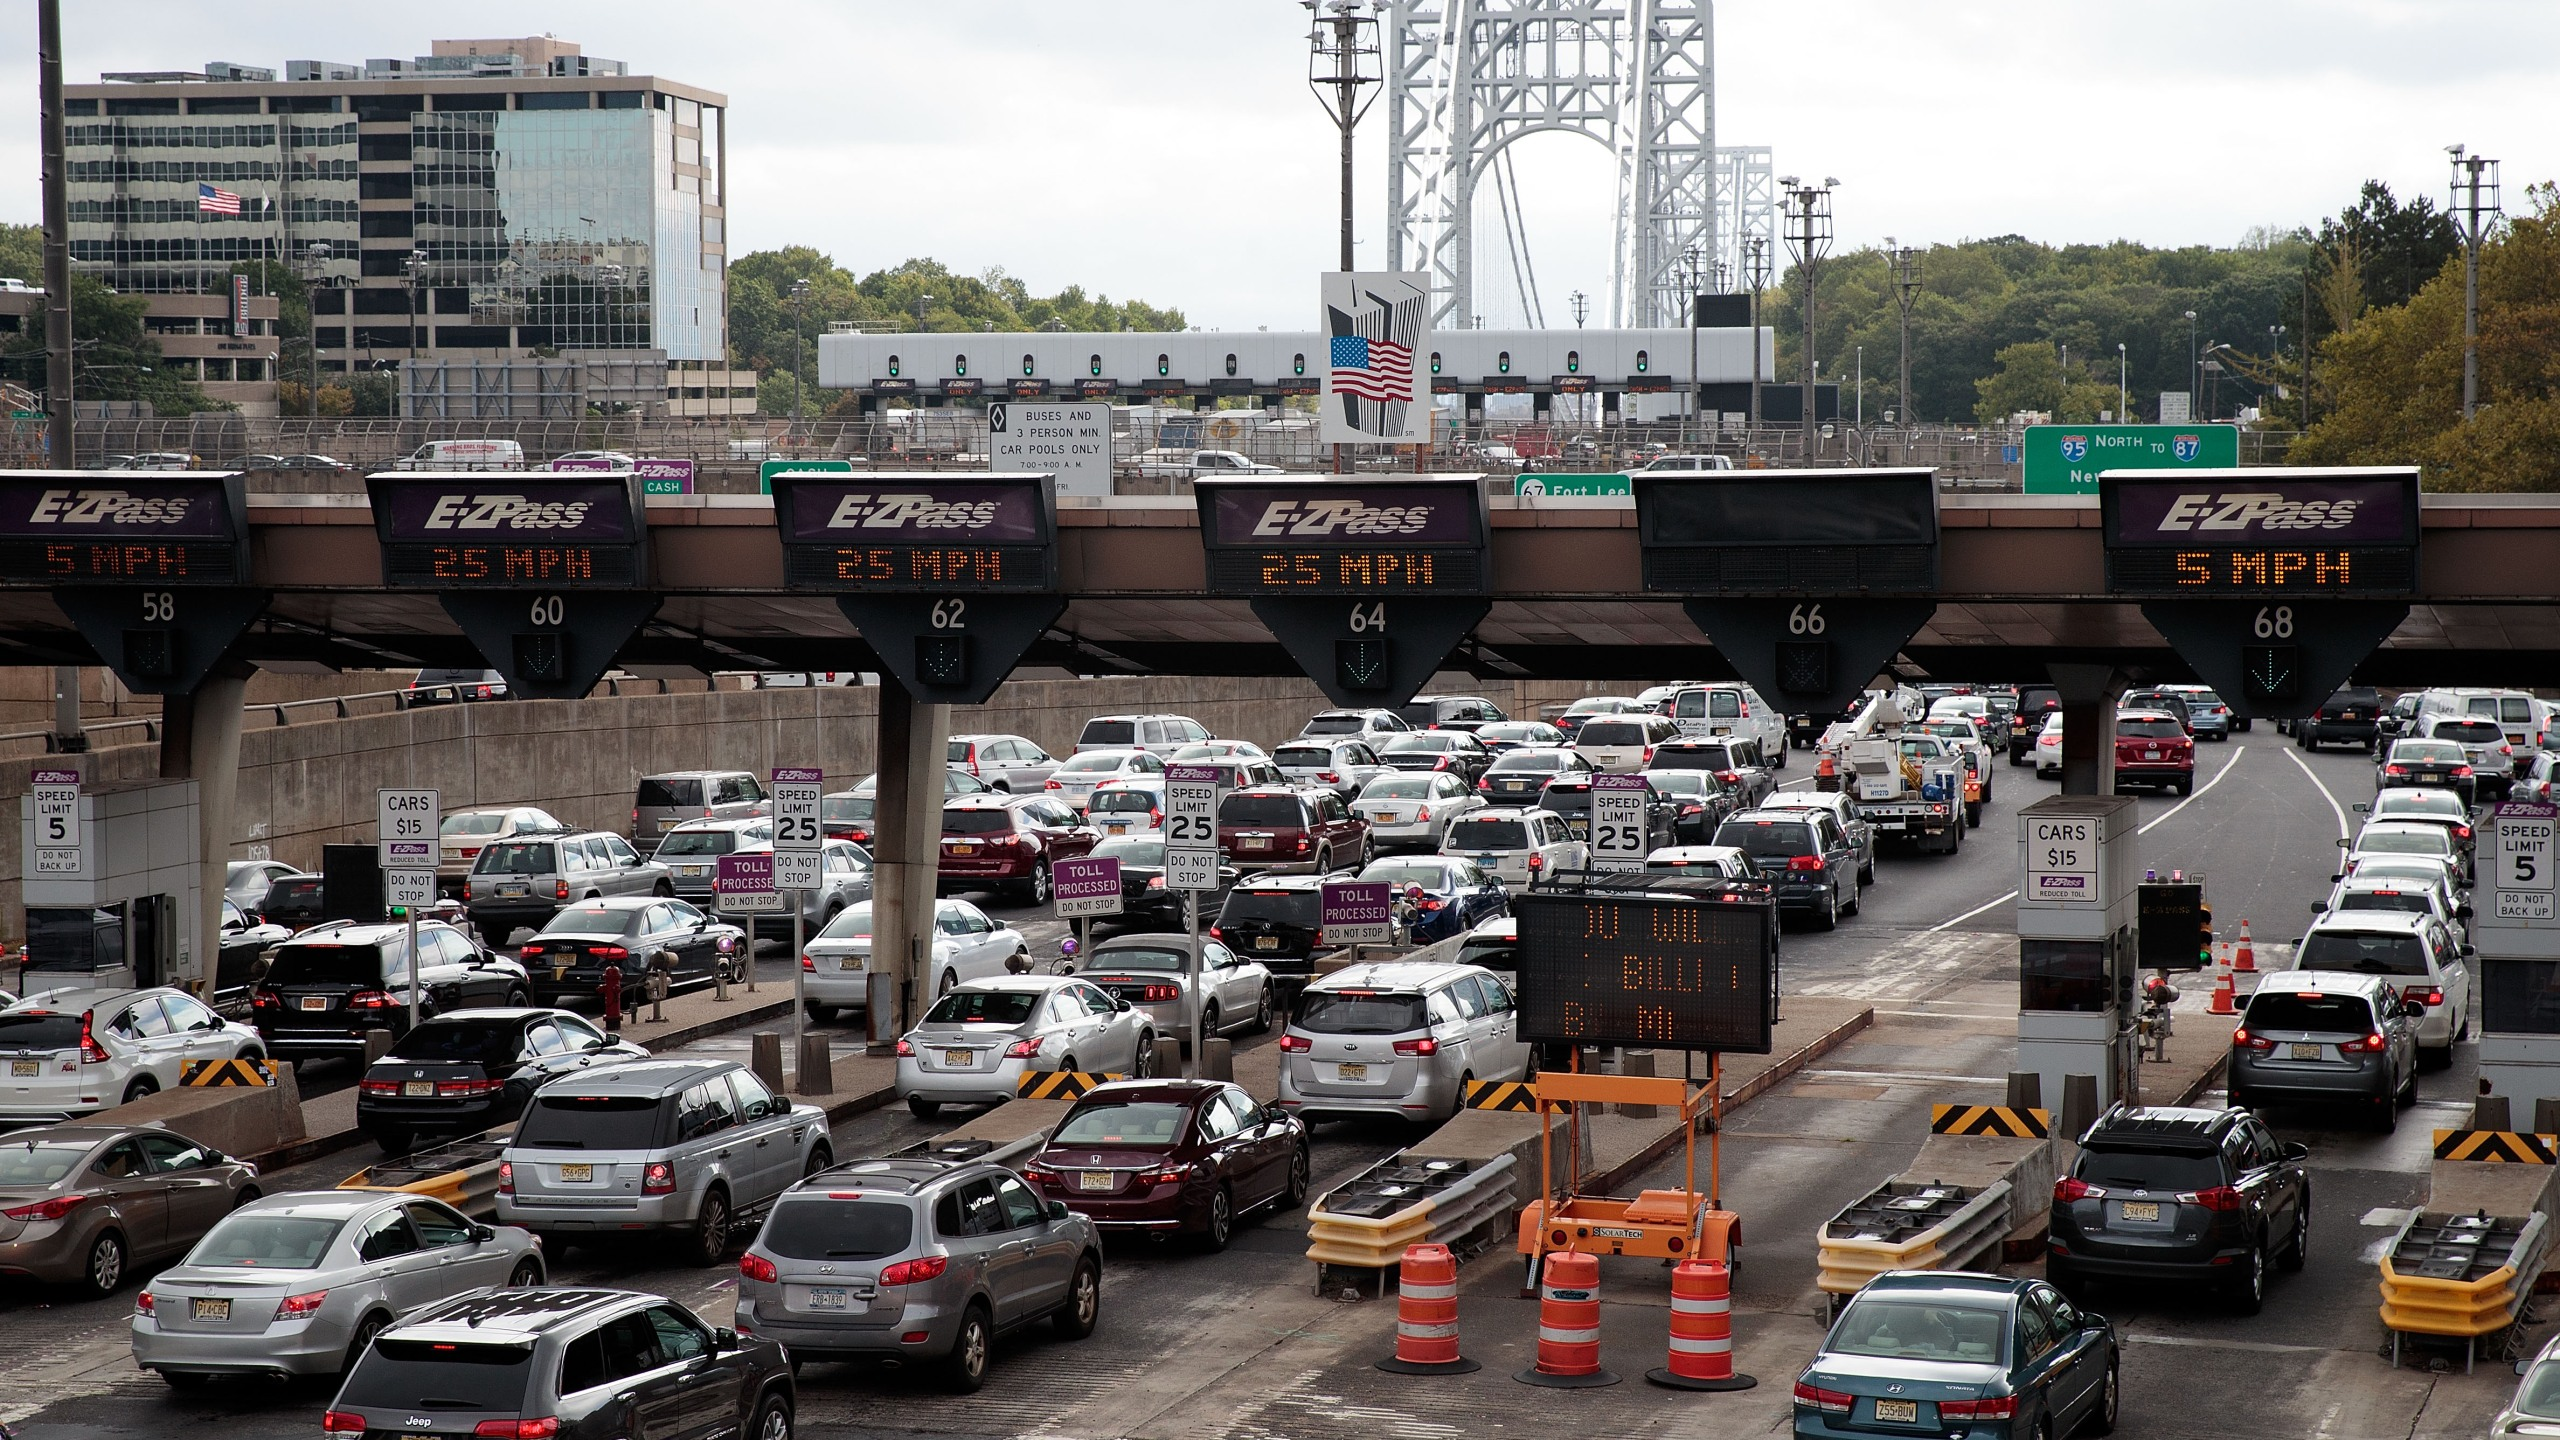 Traffic approaches the George Washington Bridge, September 7, 2016 in Fort Lee, New Jersey. Jury selection begins on Thursday for the New Jersey 'Bridgegate' trial. Two former allies of New Jersey Governor Chris Christie stand accused of intentionally causing traffic gridlock in Fort Lee during morning rush hour for a week in September 2013. (Drew Angerer/Getty Images)